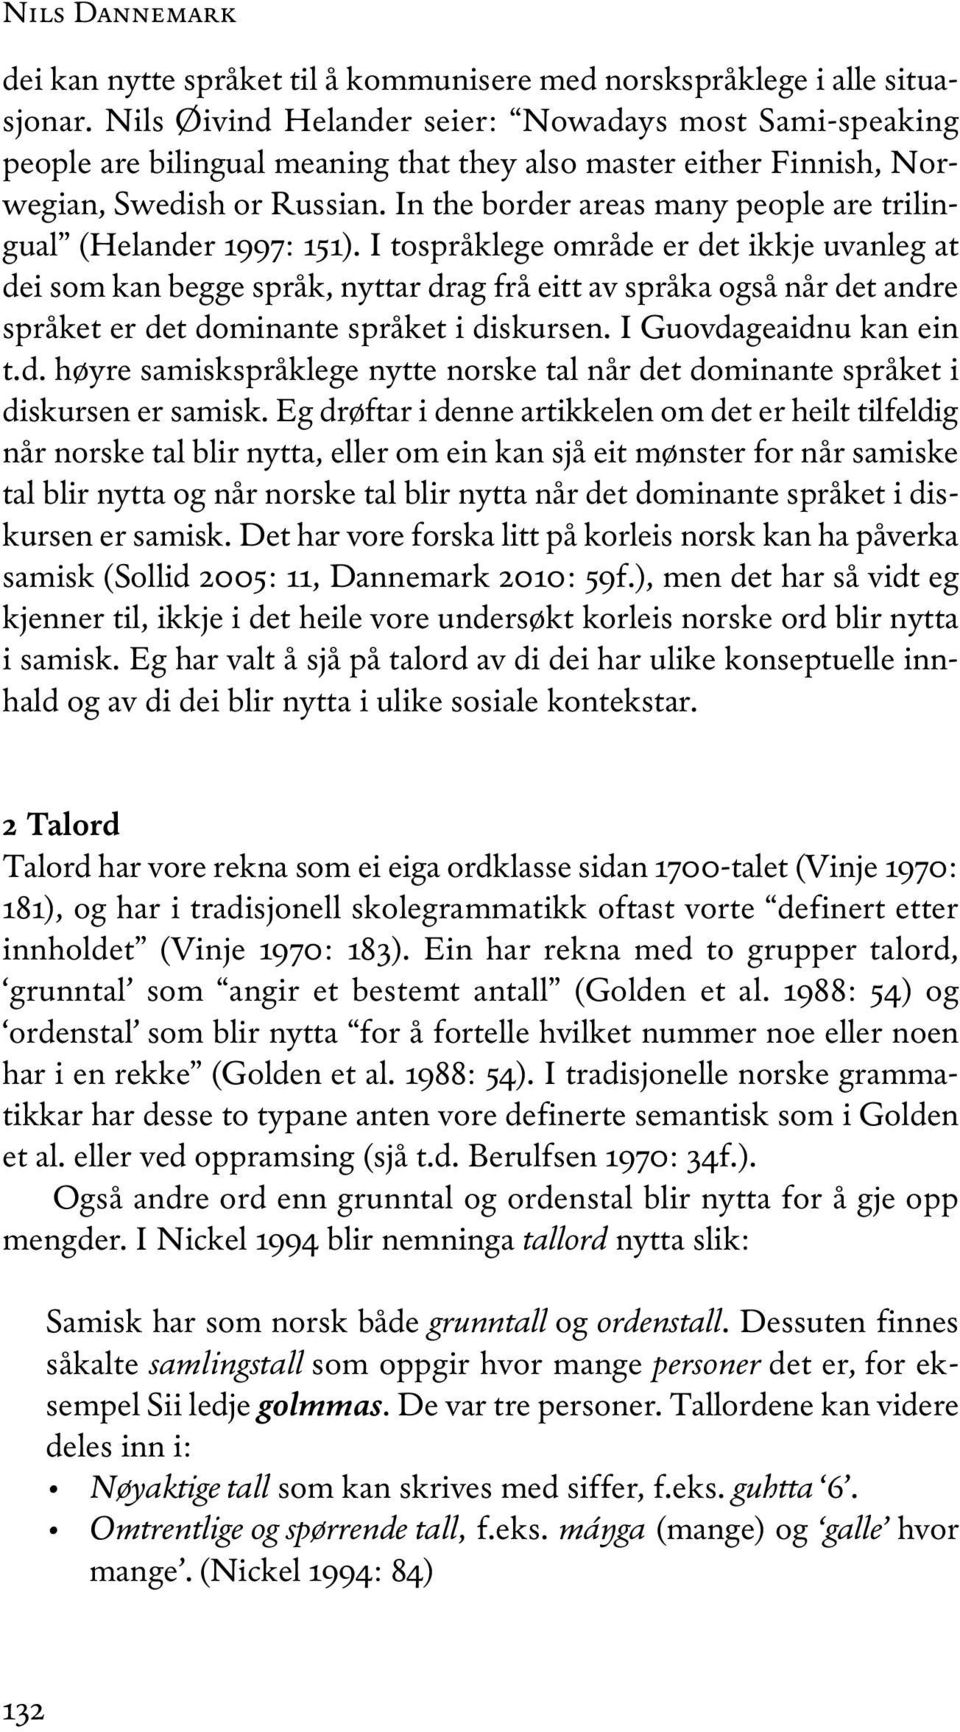 in the border areas many people are trilingual (Helander 1997: 151).